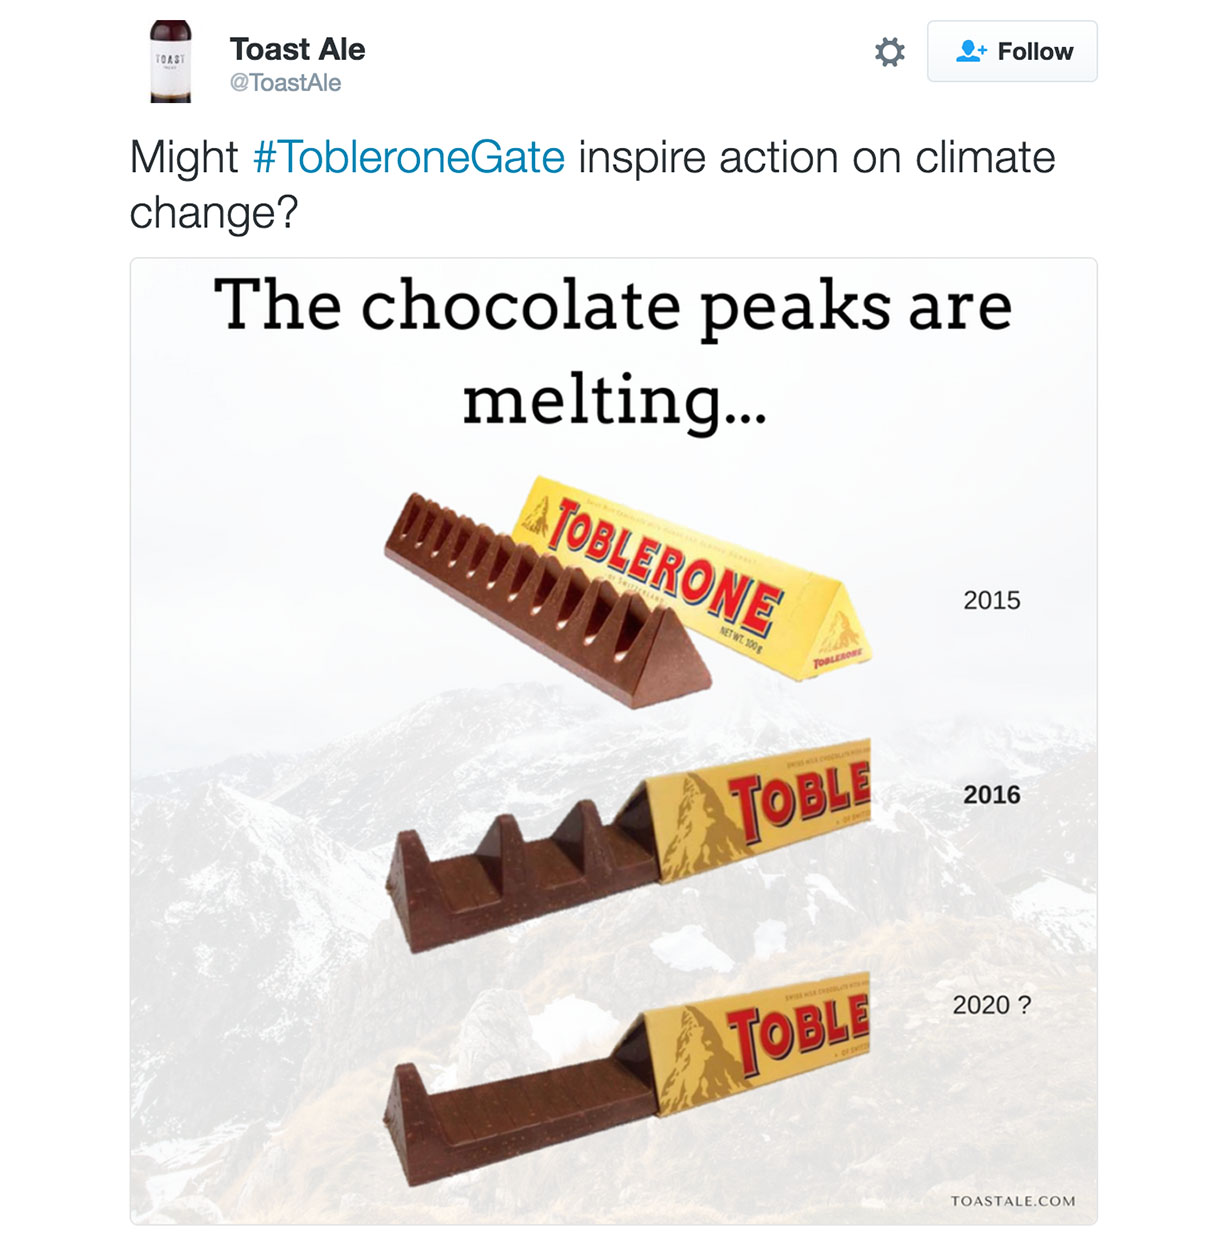 Toast Ale Twitter post on the New Toblerone bar